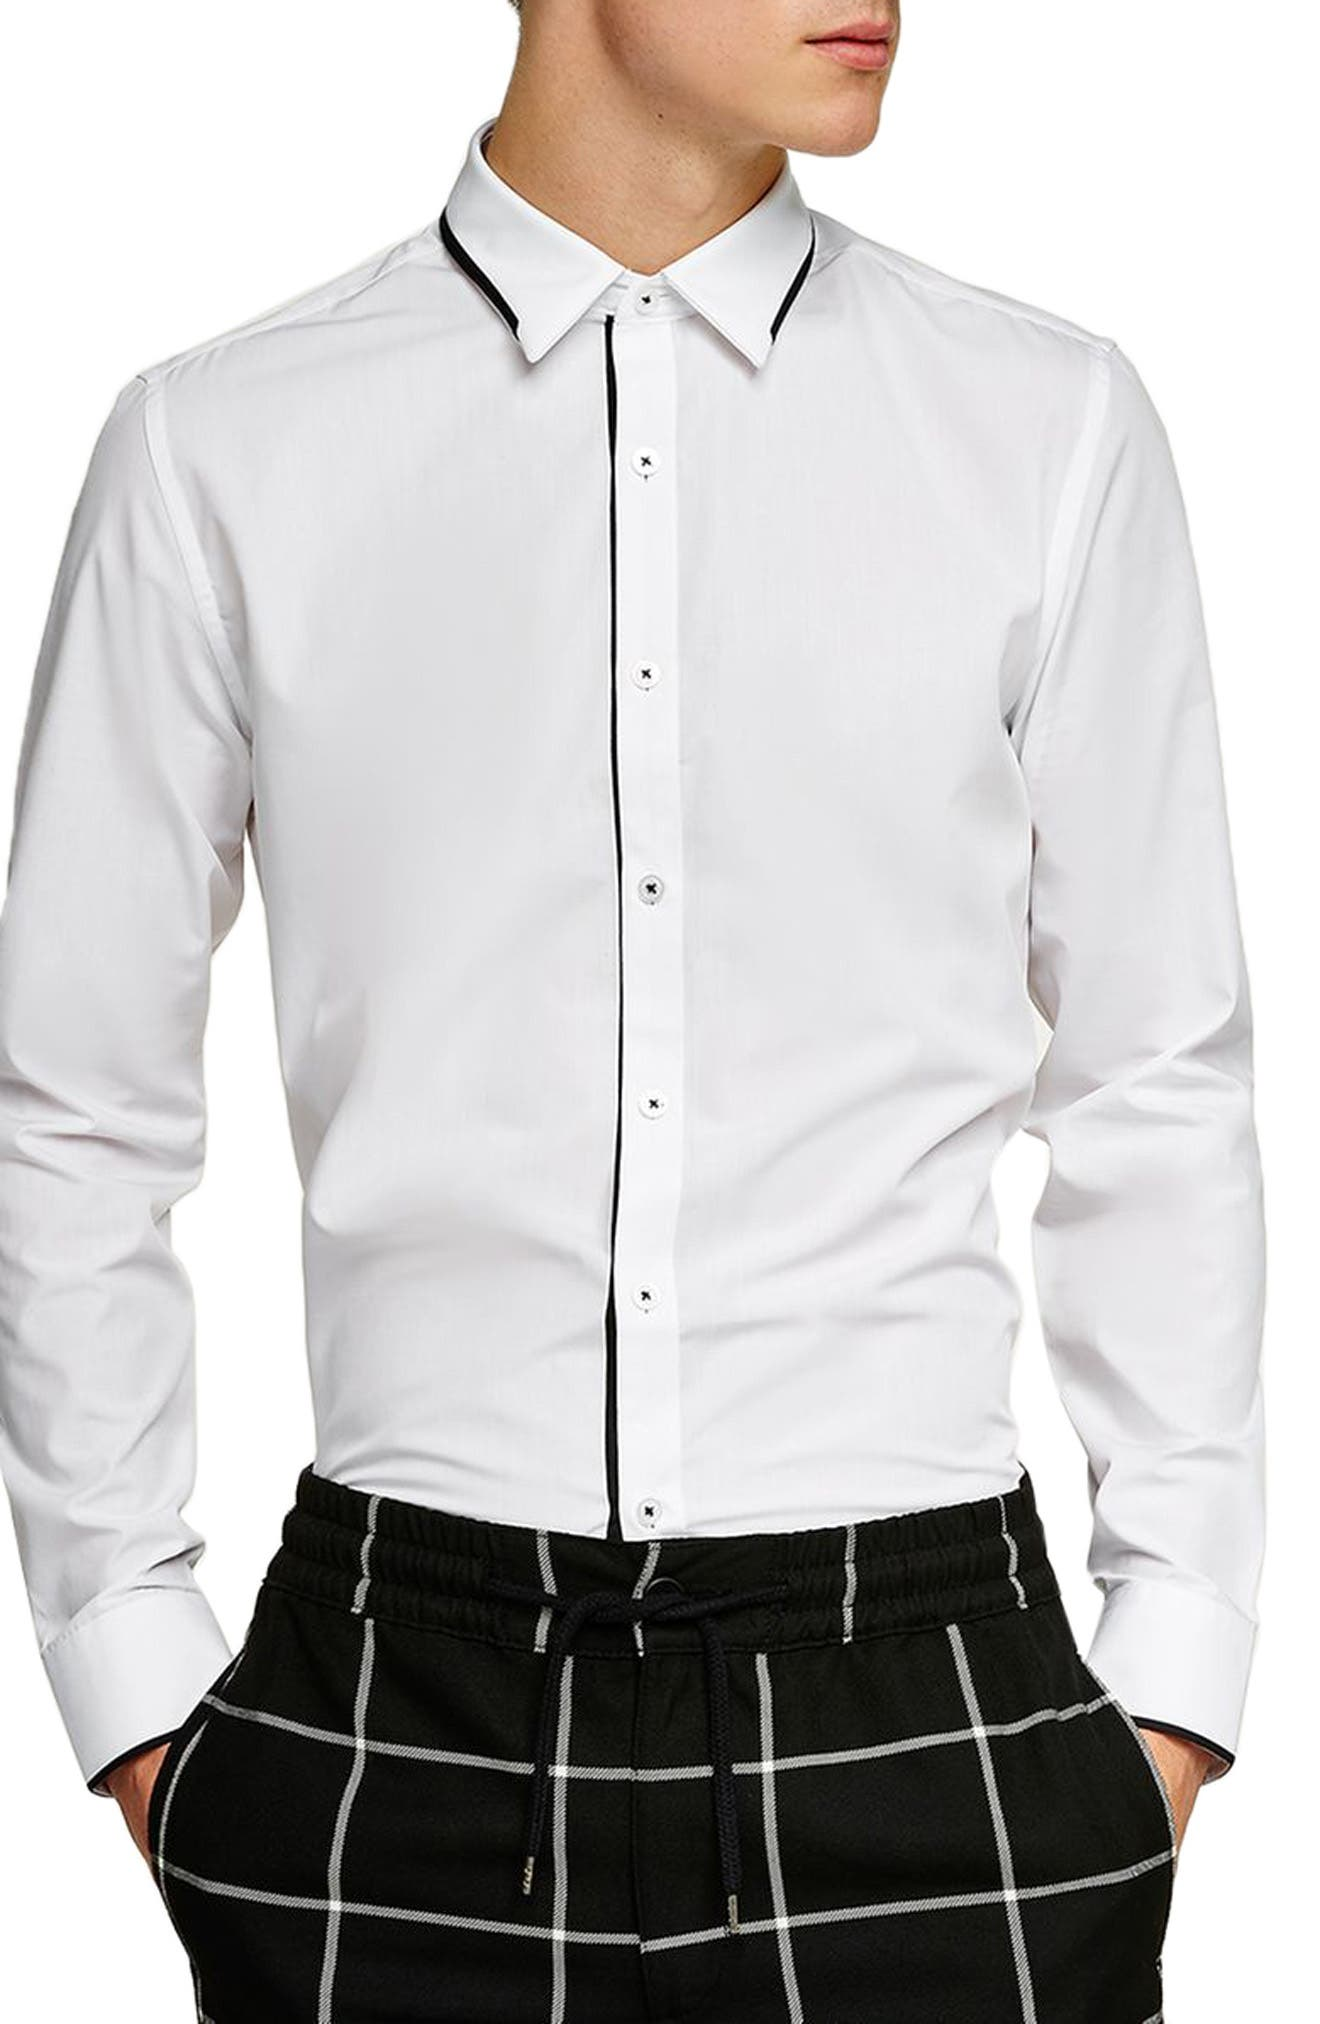 Smart Skinny Fit Dress Shirt,                         Main,                         color, WHITE